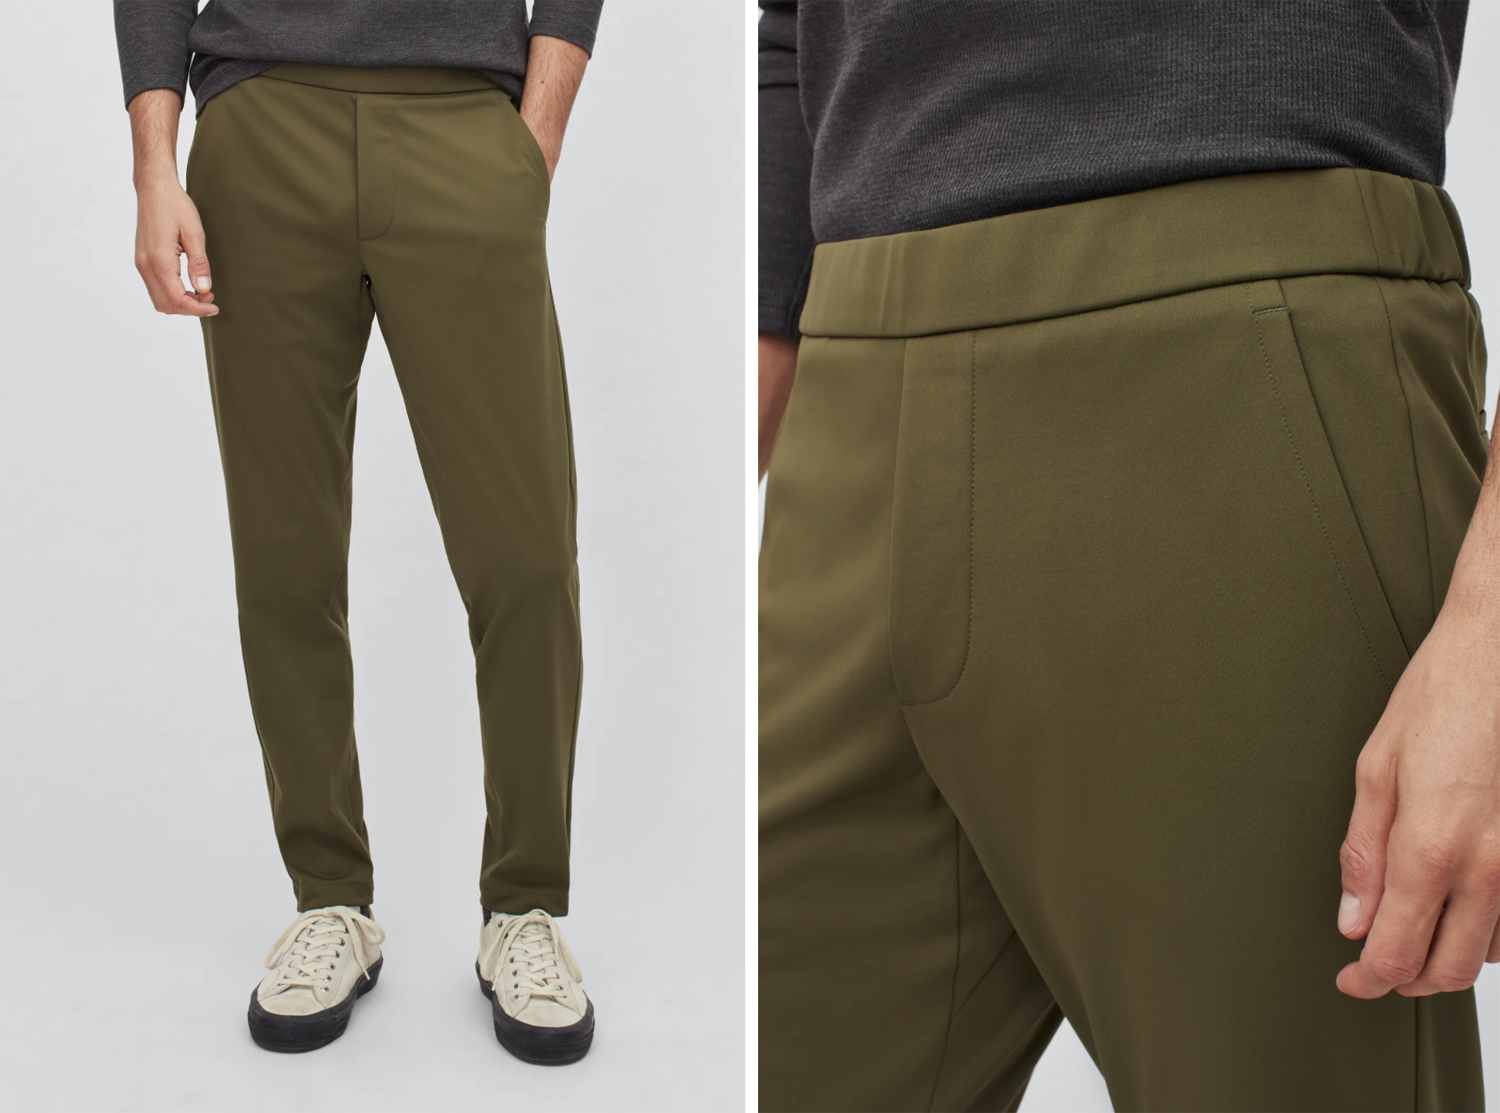 bonobos The WFHQ Pant